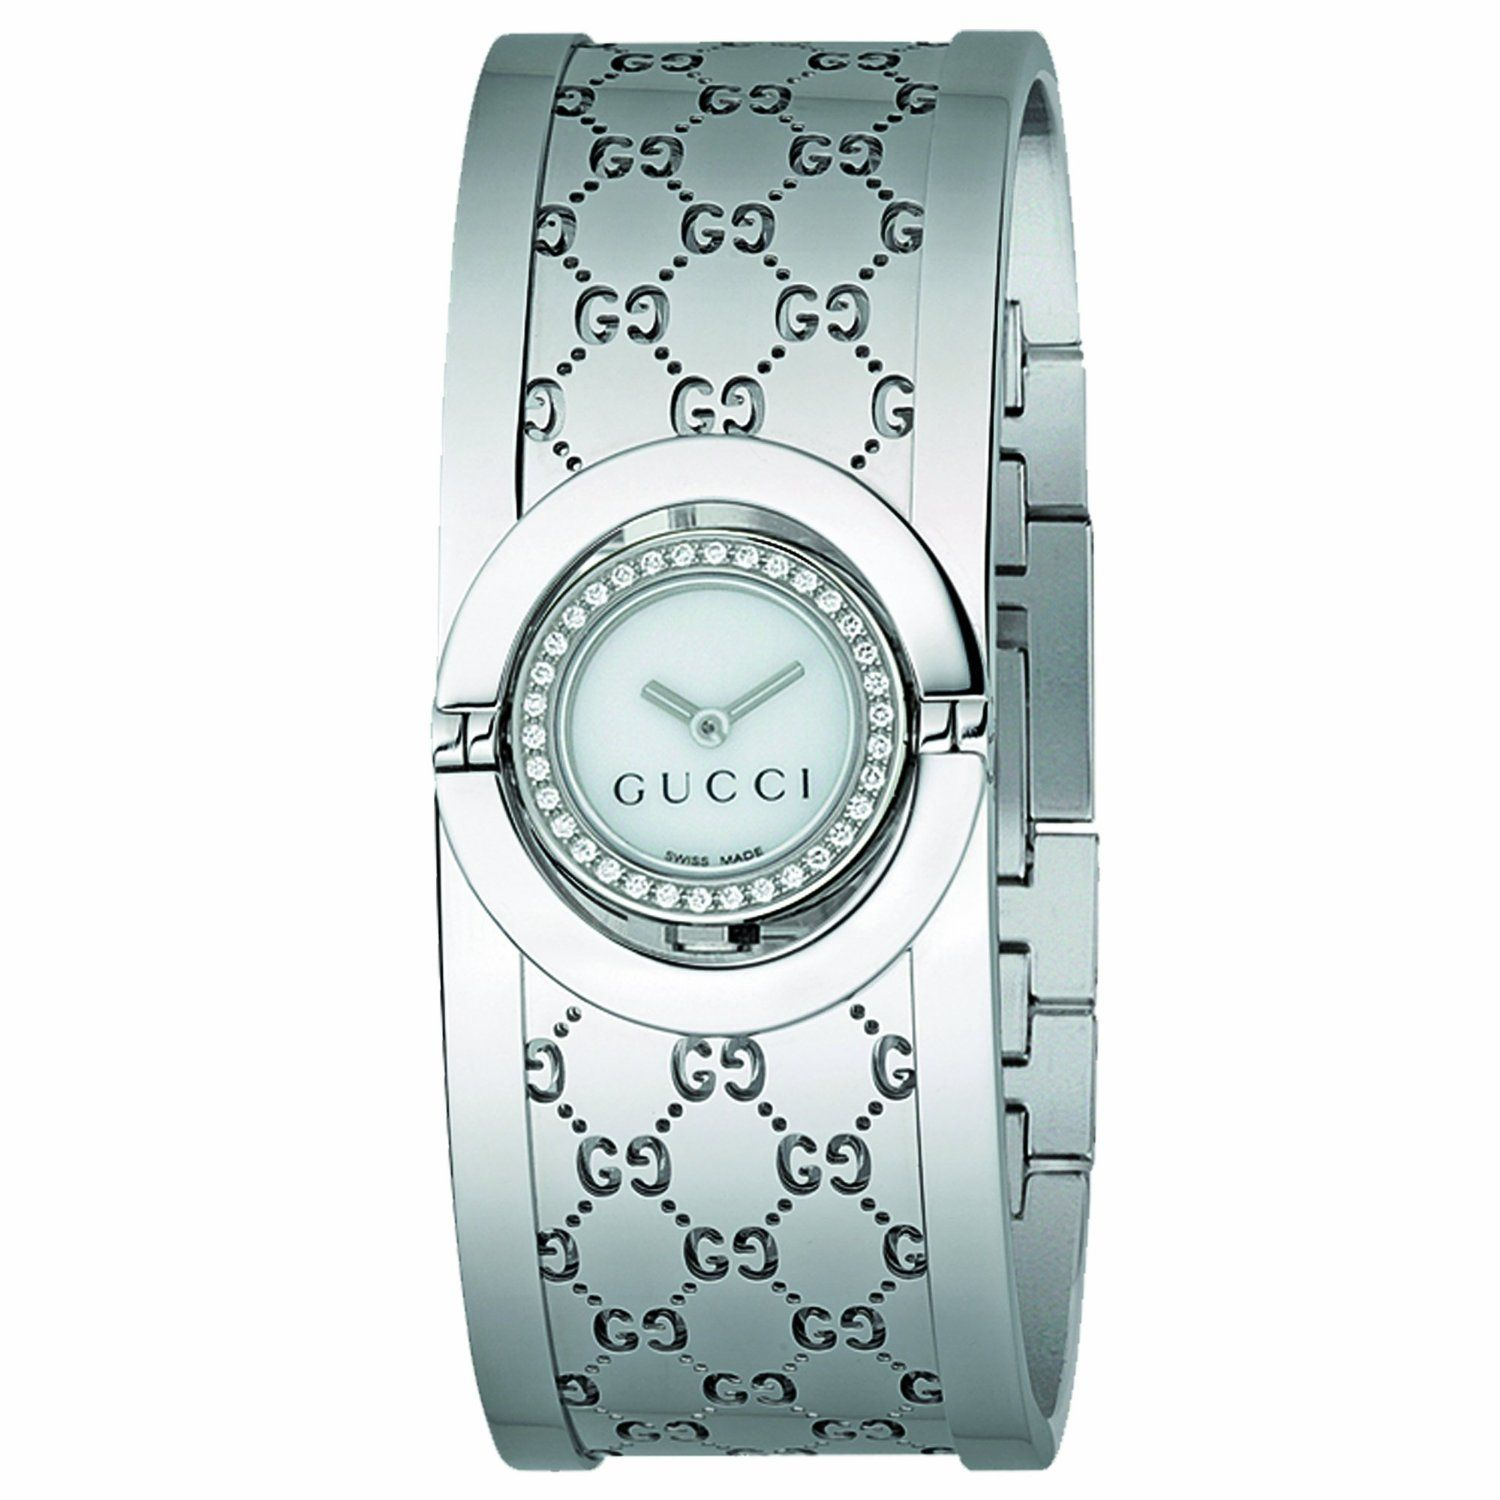 0f7ddd42786 Watches for Women Gucci Women s YA112511 Twirl Watch – A Million